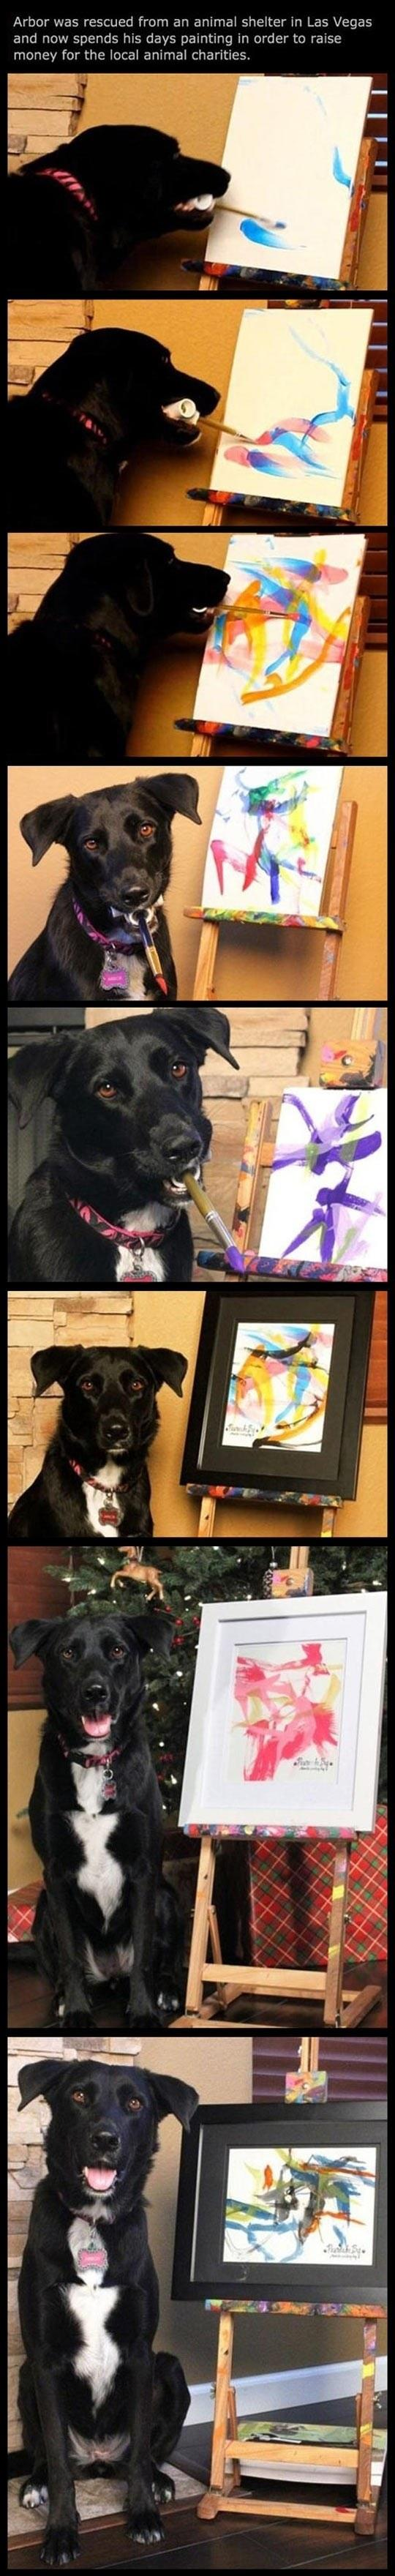 The Clever Dog That Can Paint